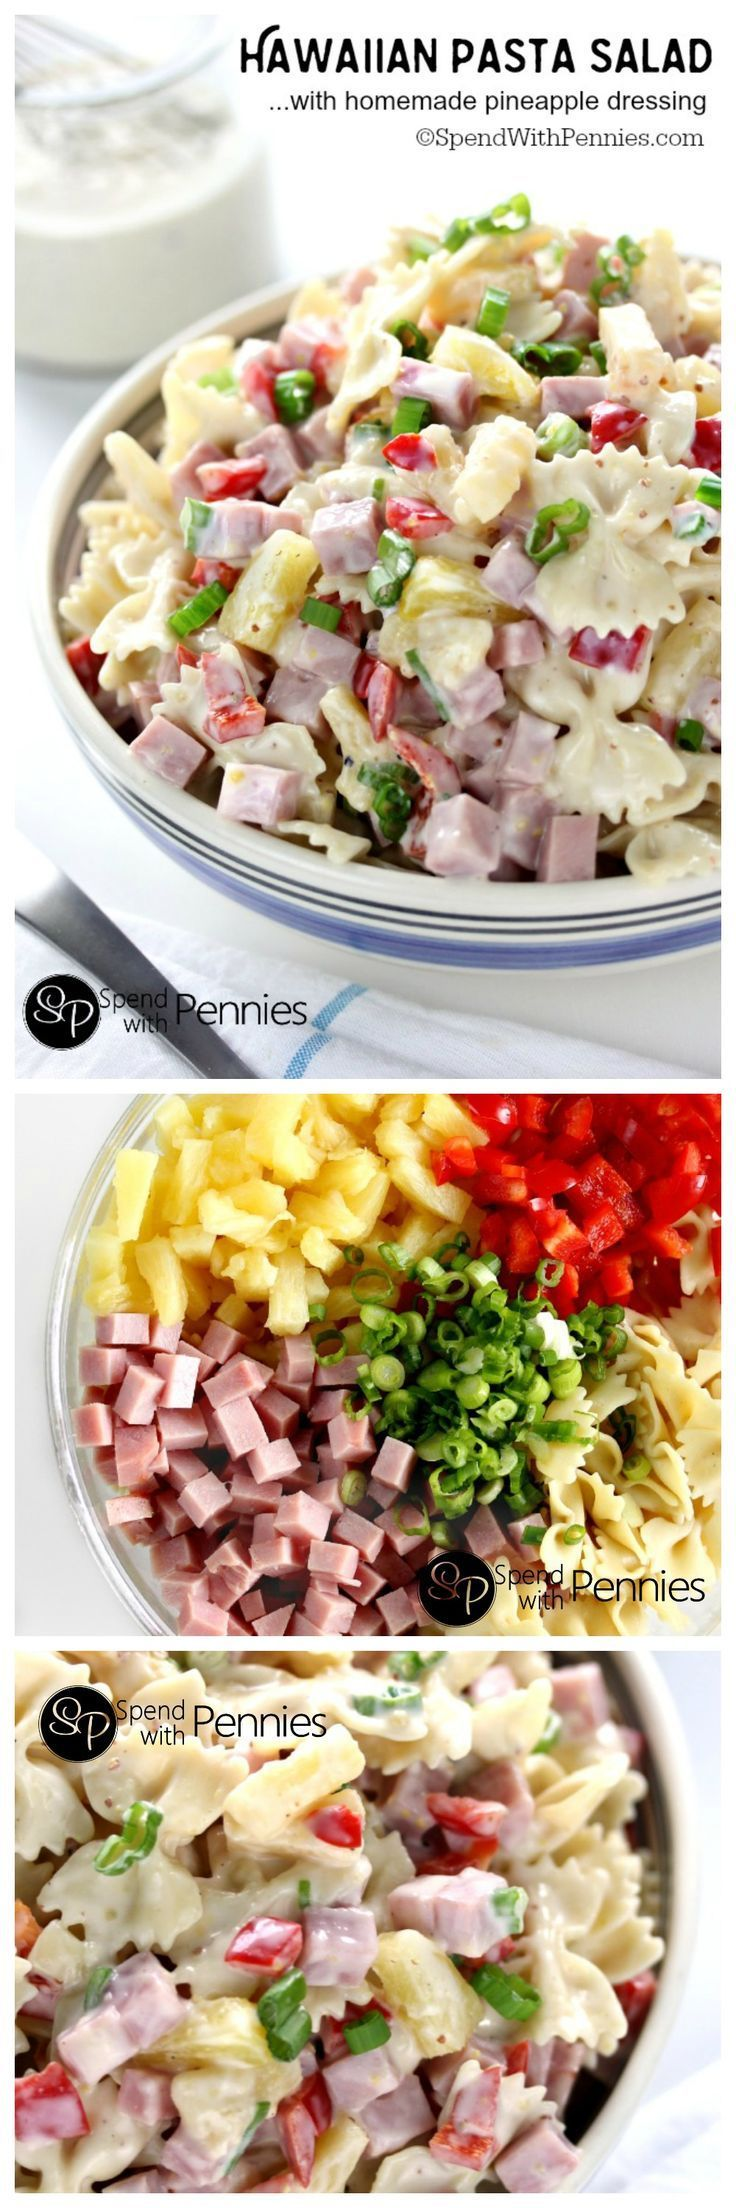 Hawaiian Pasta Salad is literally one of the most delicious cold pasta salad recipes!  Pasta combined with ham and sweet pineapple and tossed with a delicious homemade dressing is the perfect combination!